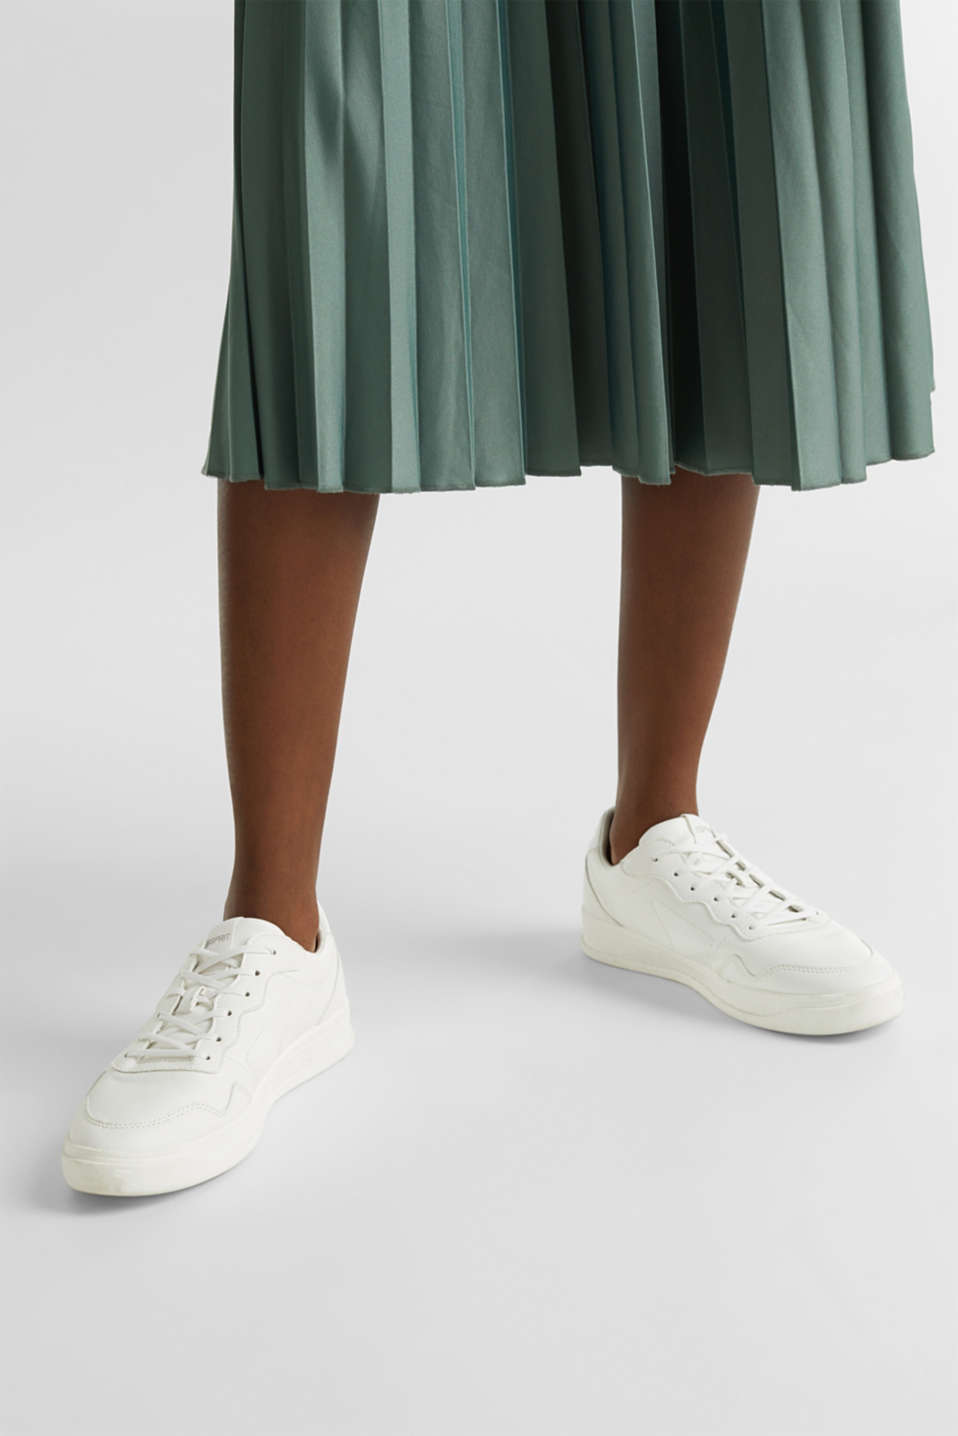 Stretch jersey skirt with accordion pleats, KHAKI GREEN, detail image number 5